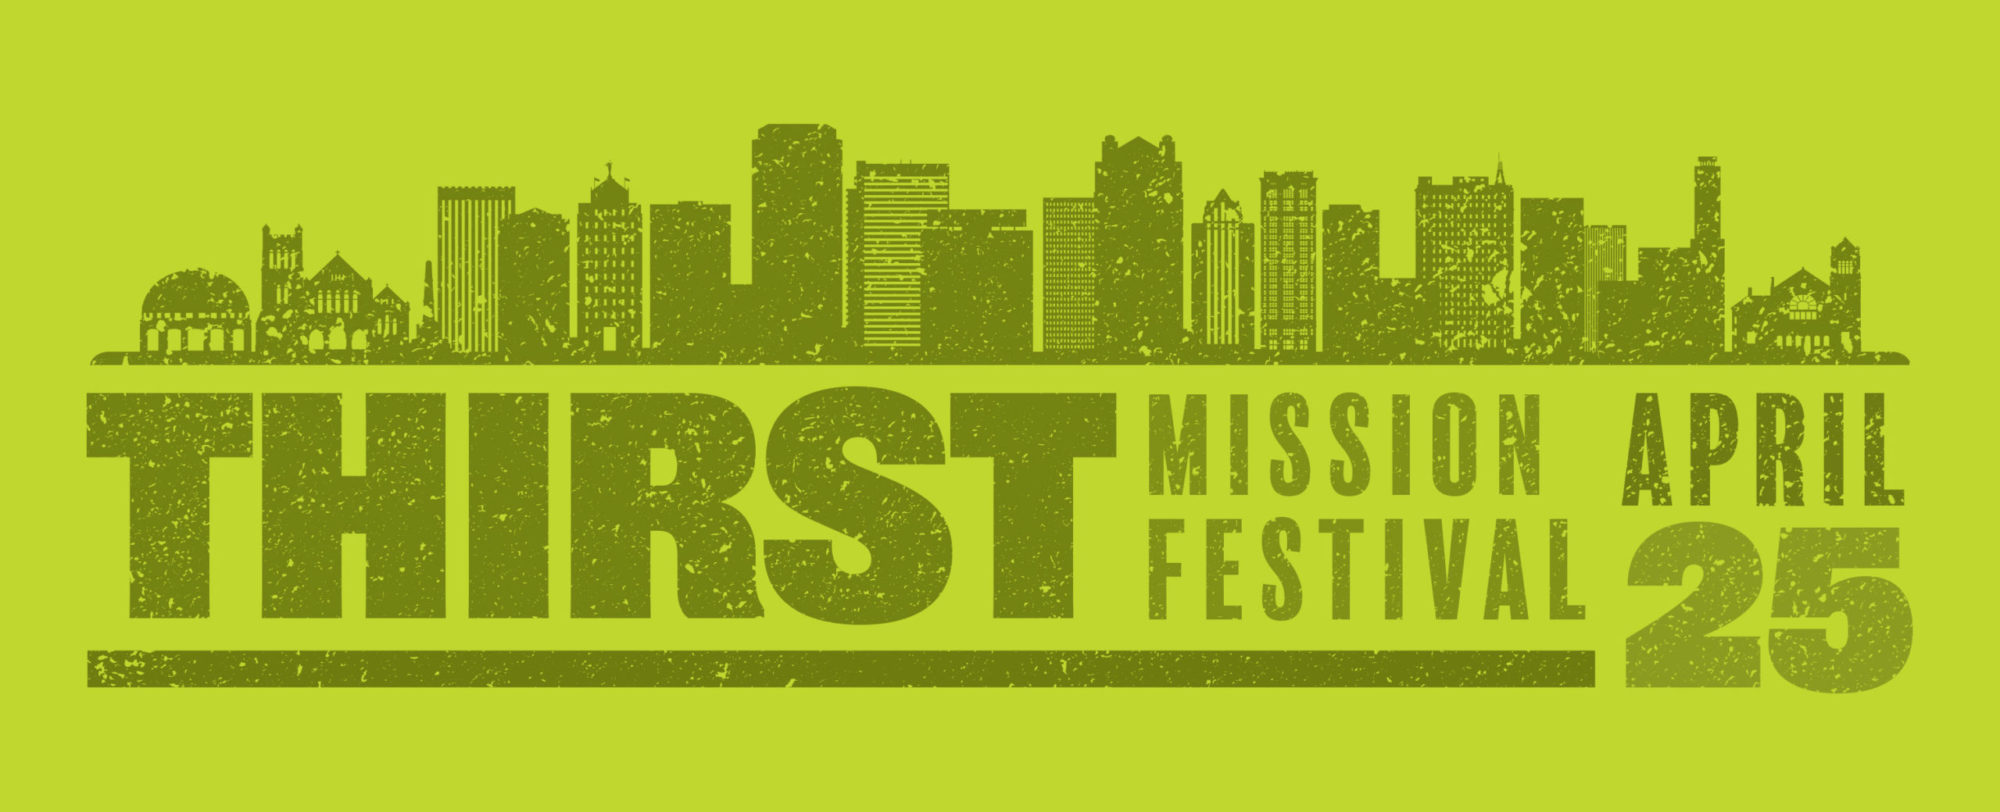 Thirst Missions Festival